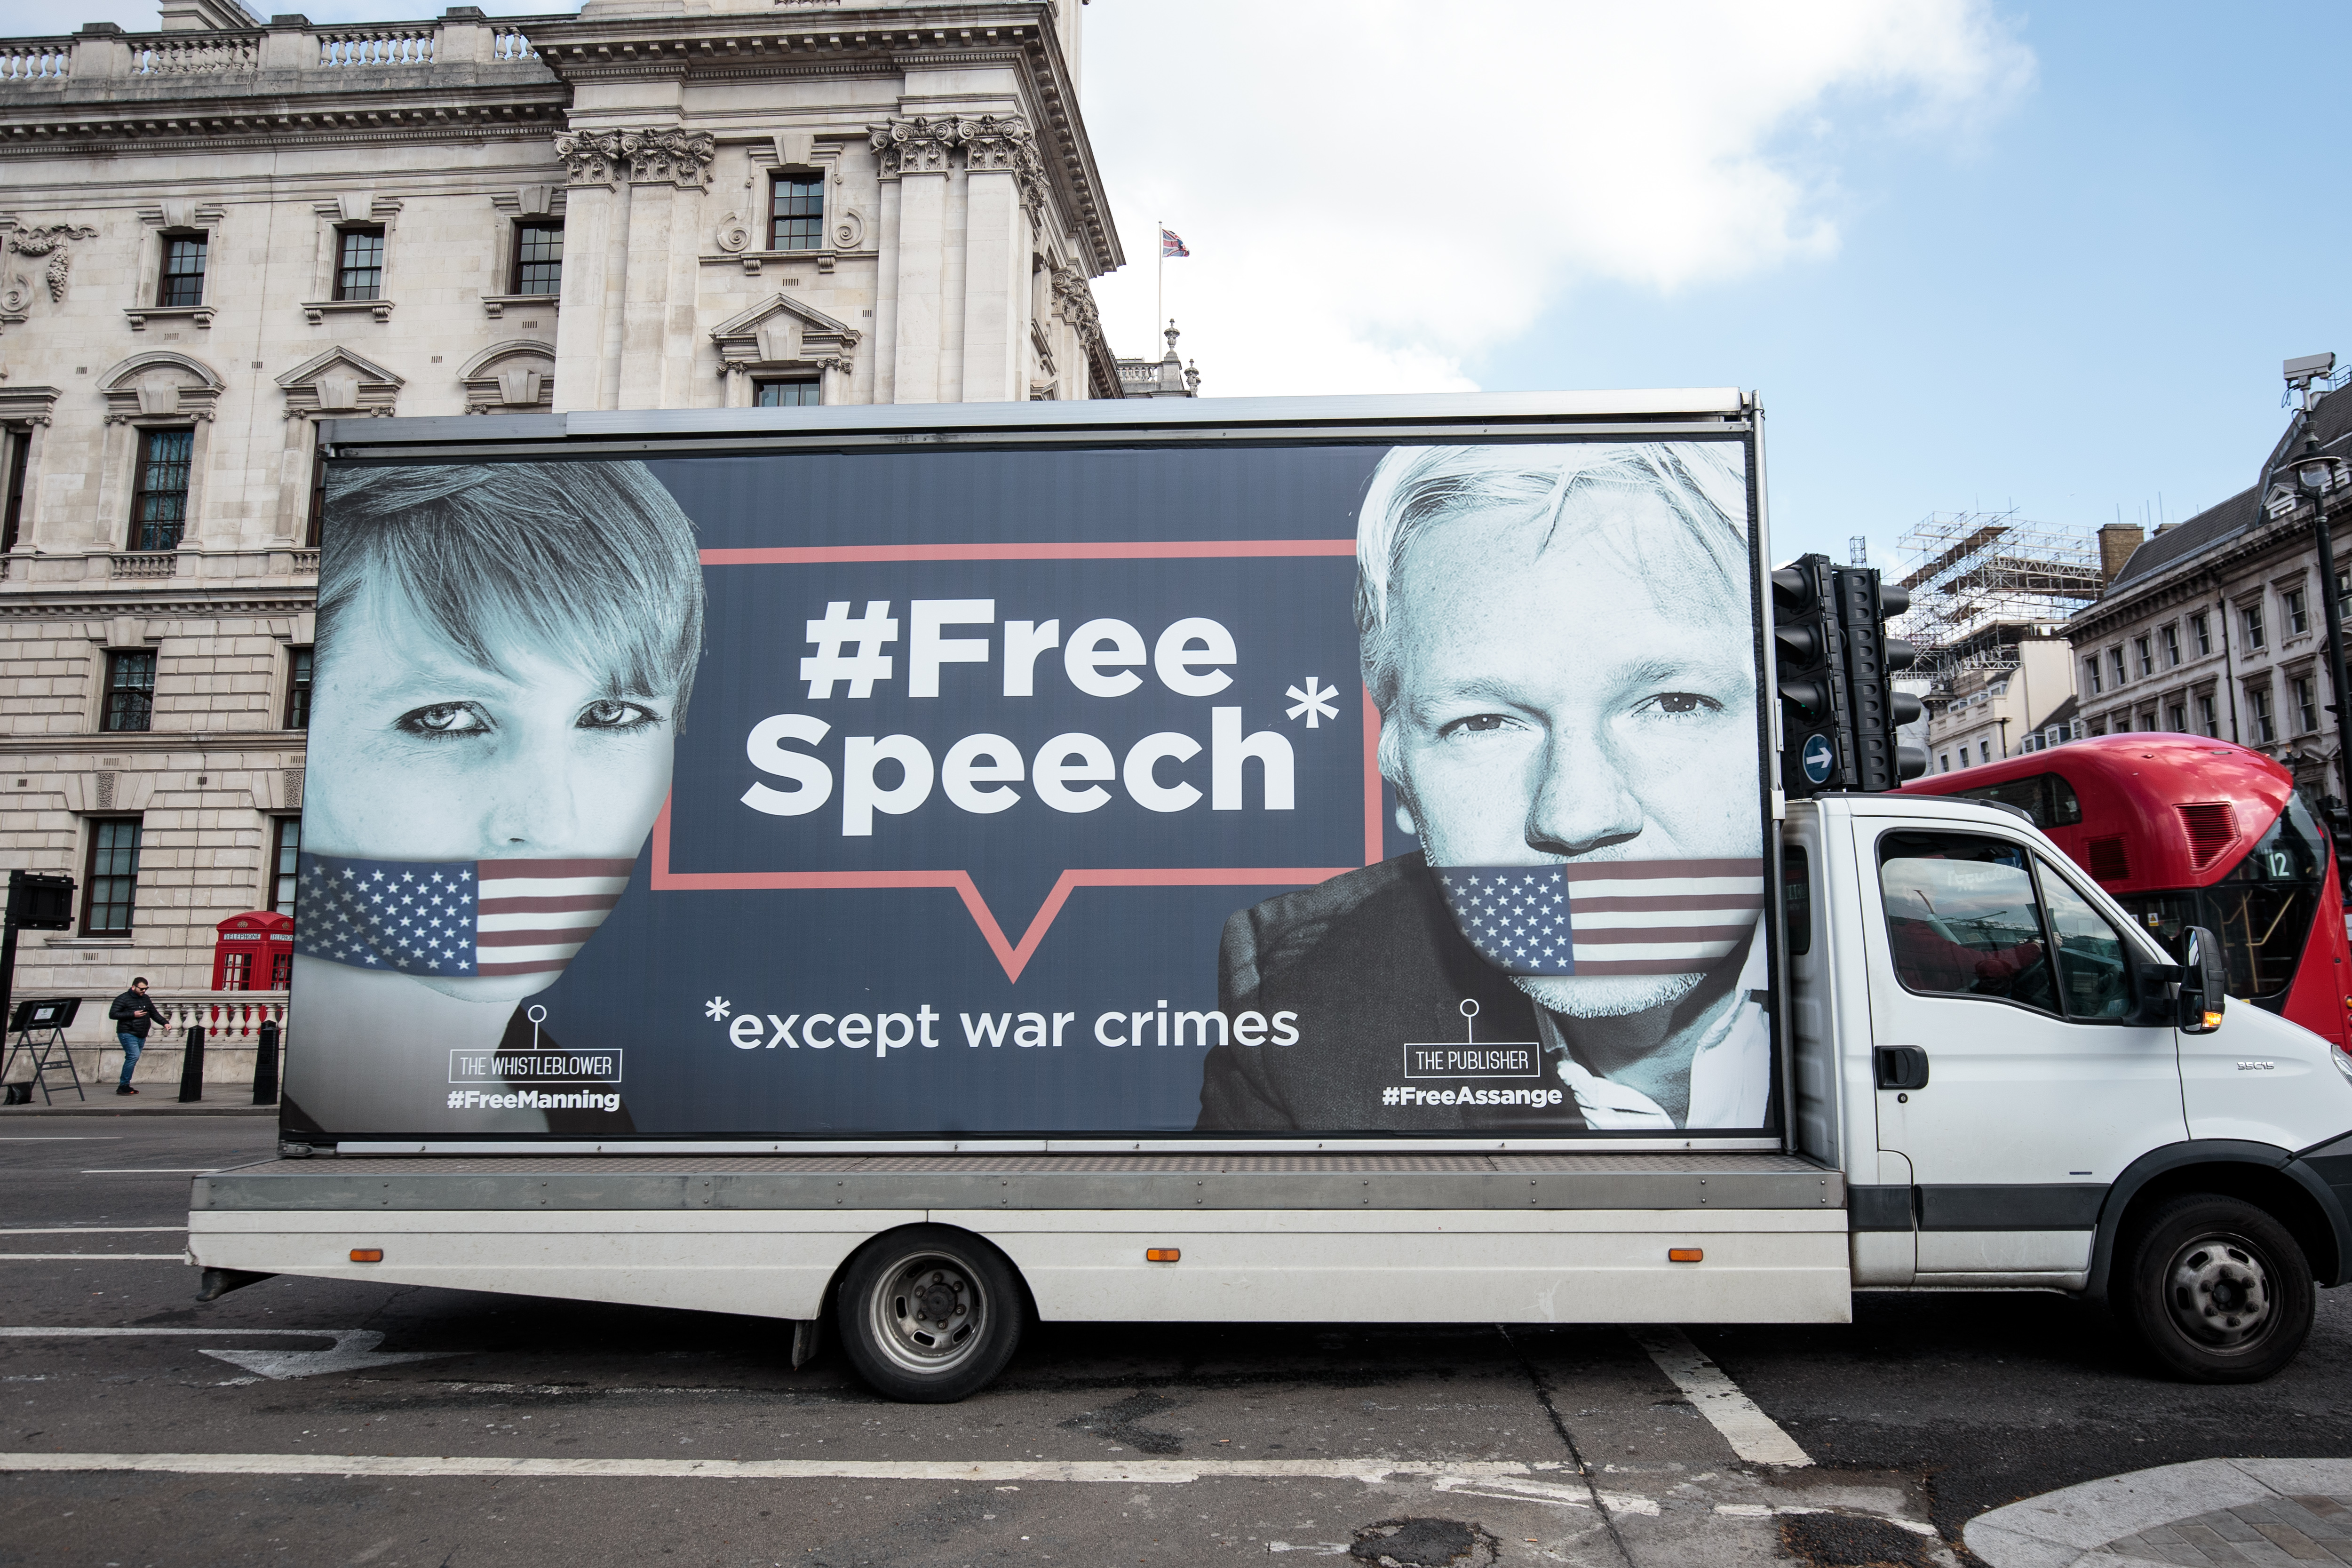 LONDON, ENGLAND - APRIL 03: A van with a billboard in support of American whistleblower Chelsea Manning and Wikileaks founder Julian Assange is driven around Westminster on April 3, 2019 in London, England. On Tuesday Ecuadorean President Lenin Moreno said Mr Assange 'repeatedly violated' the terms of his asylum in the Ecuadorian embassy in London, where he has lived for almost 7 years. (Photo by Jack Taylor/Getty Images)